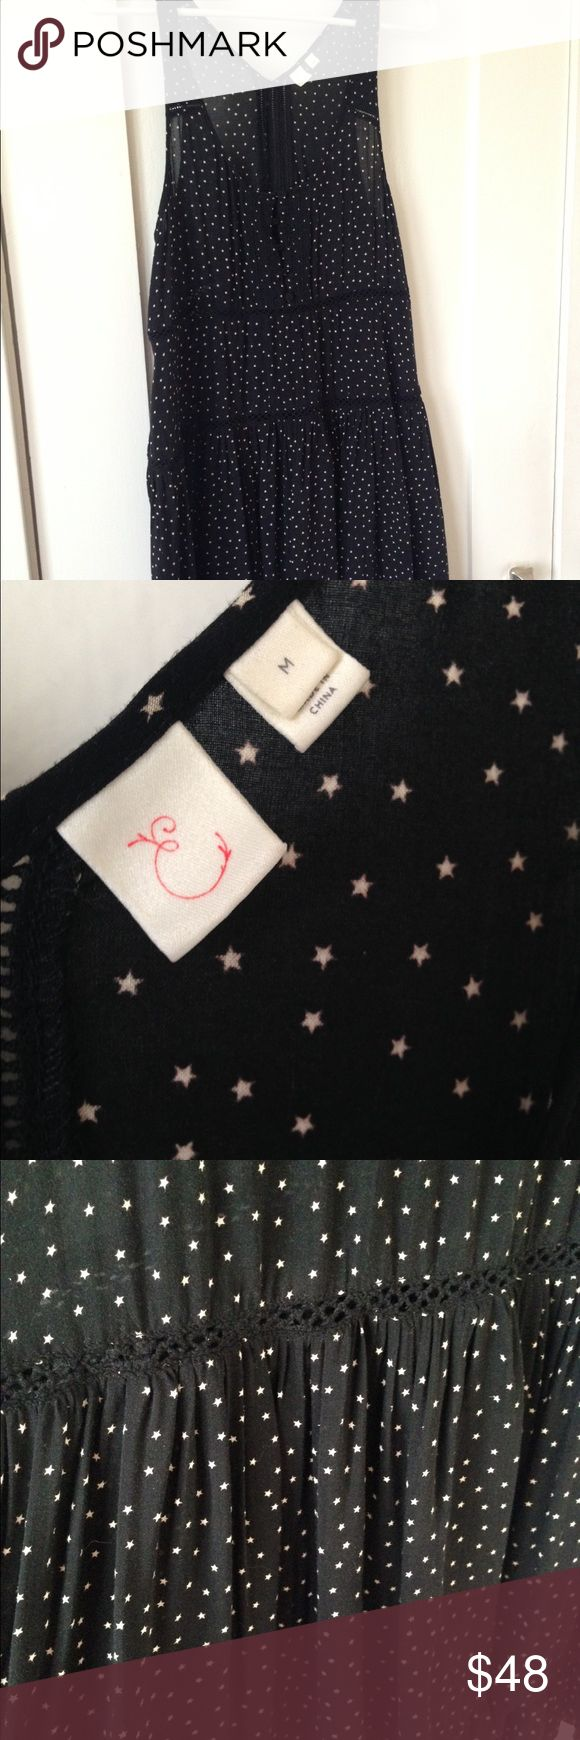 """✨SALE✨Anthropologie Eloise tunic dress This black tunic dress with stars is from Anthropologie by the brand Eloise .. Cute as a tunic or pair with denim.. Size med .. Length is 34"""" Anthropologie Dresses Midi"""